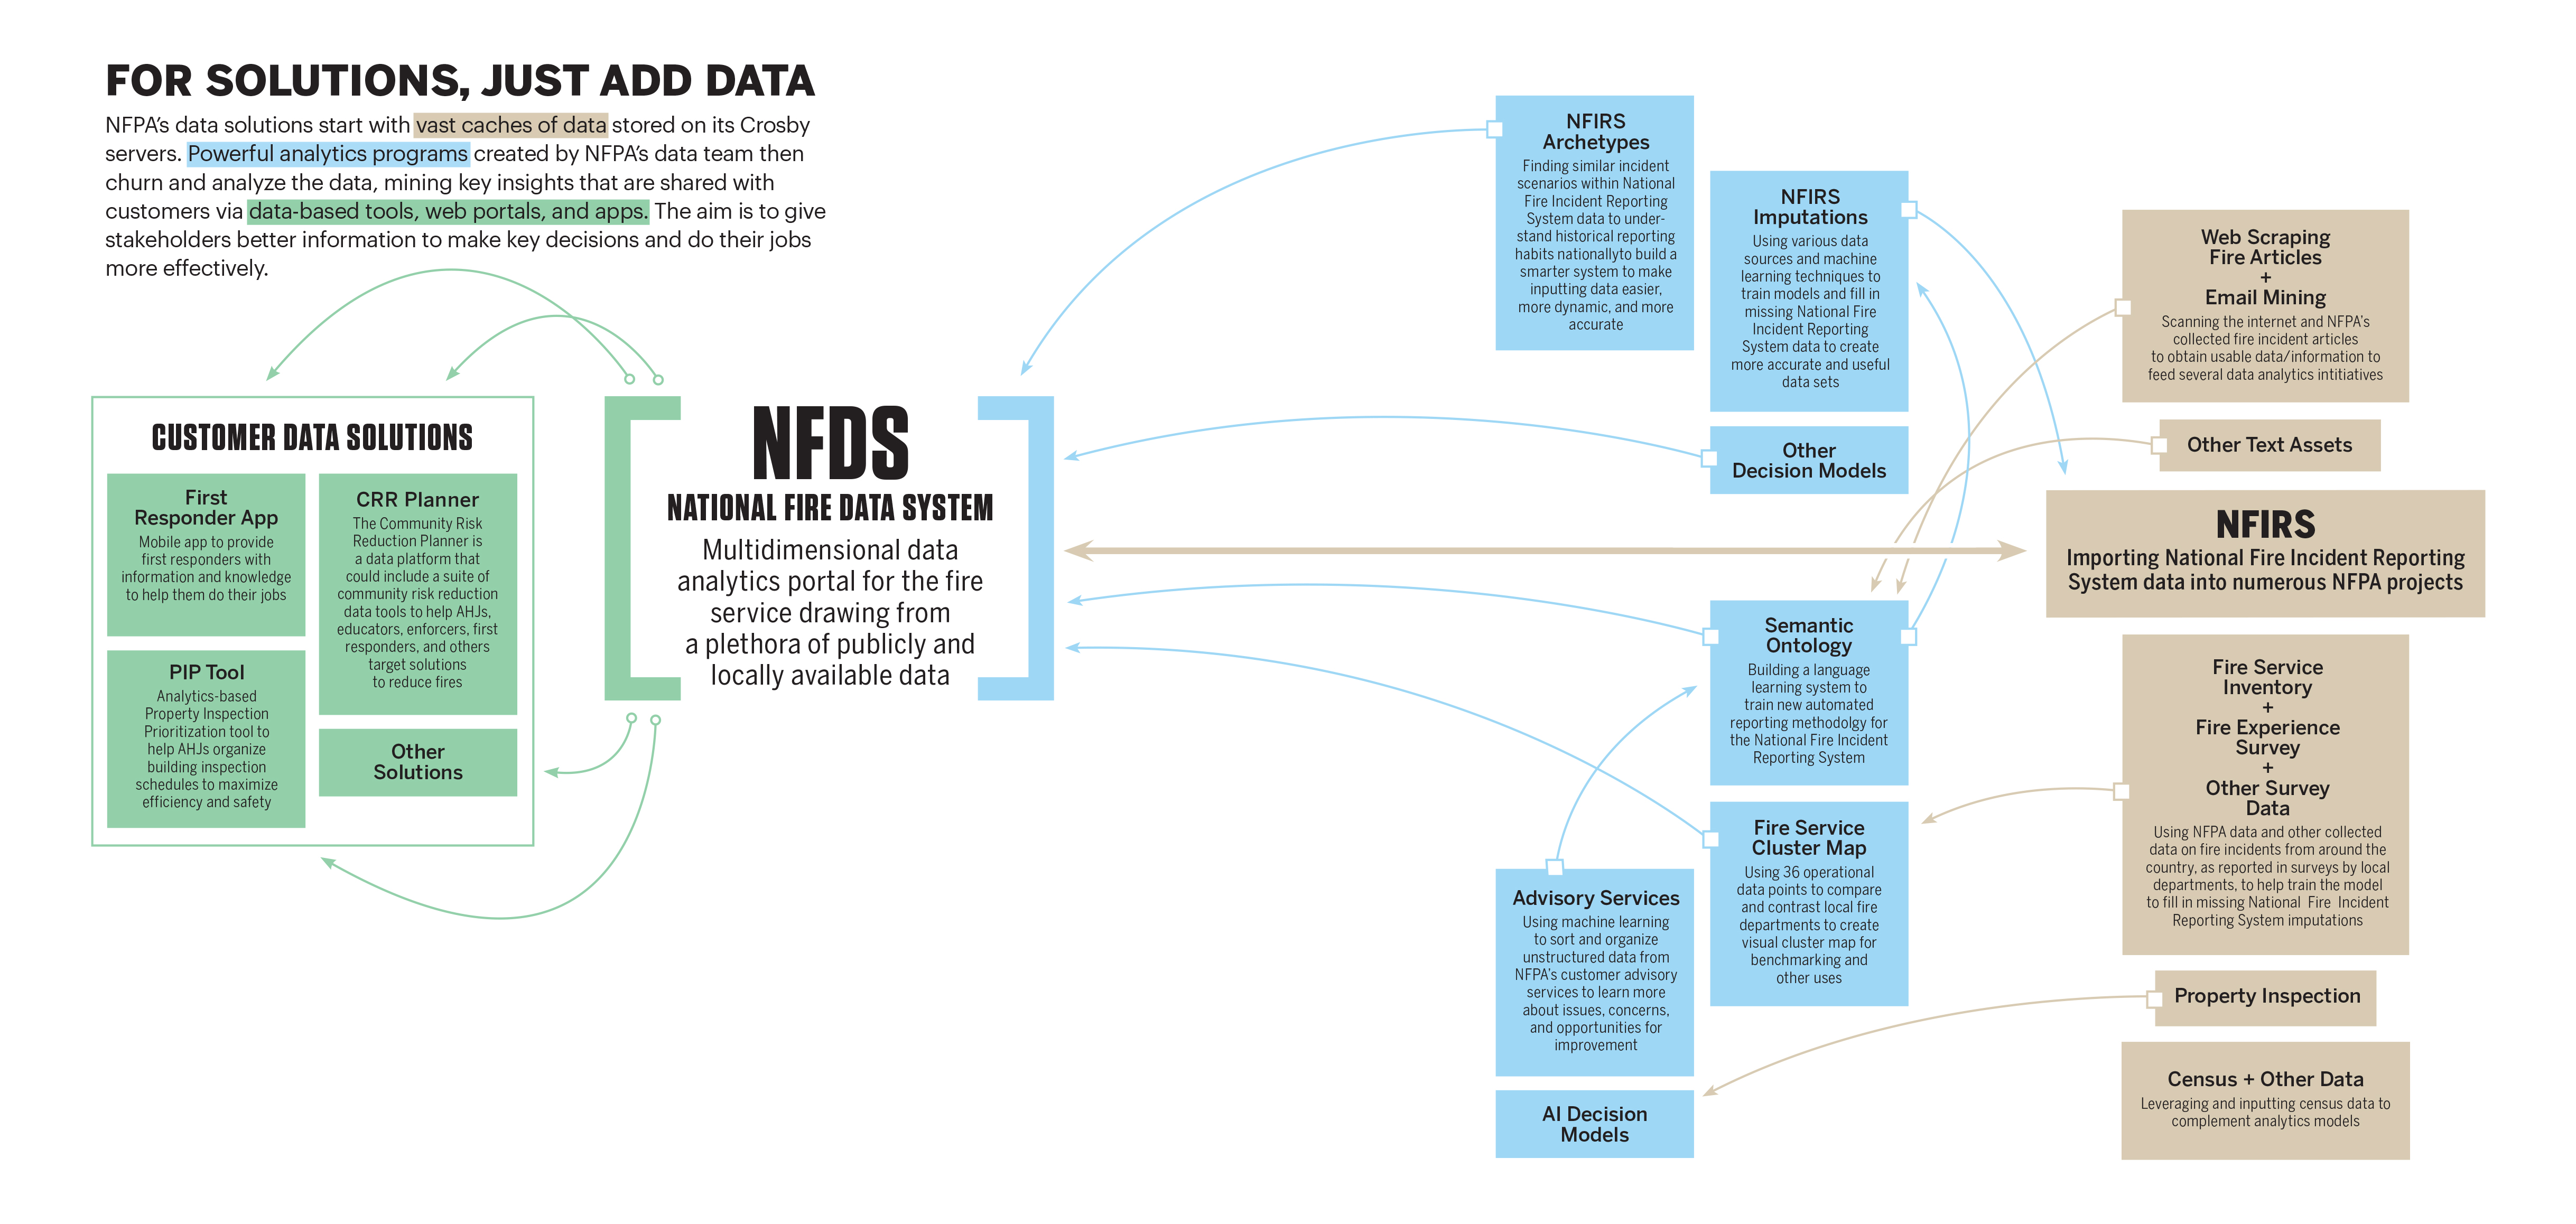 NFPA Data feature_data graphic_FINAL_reg size